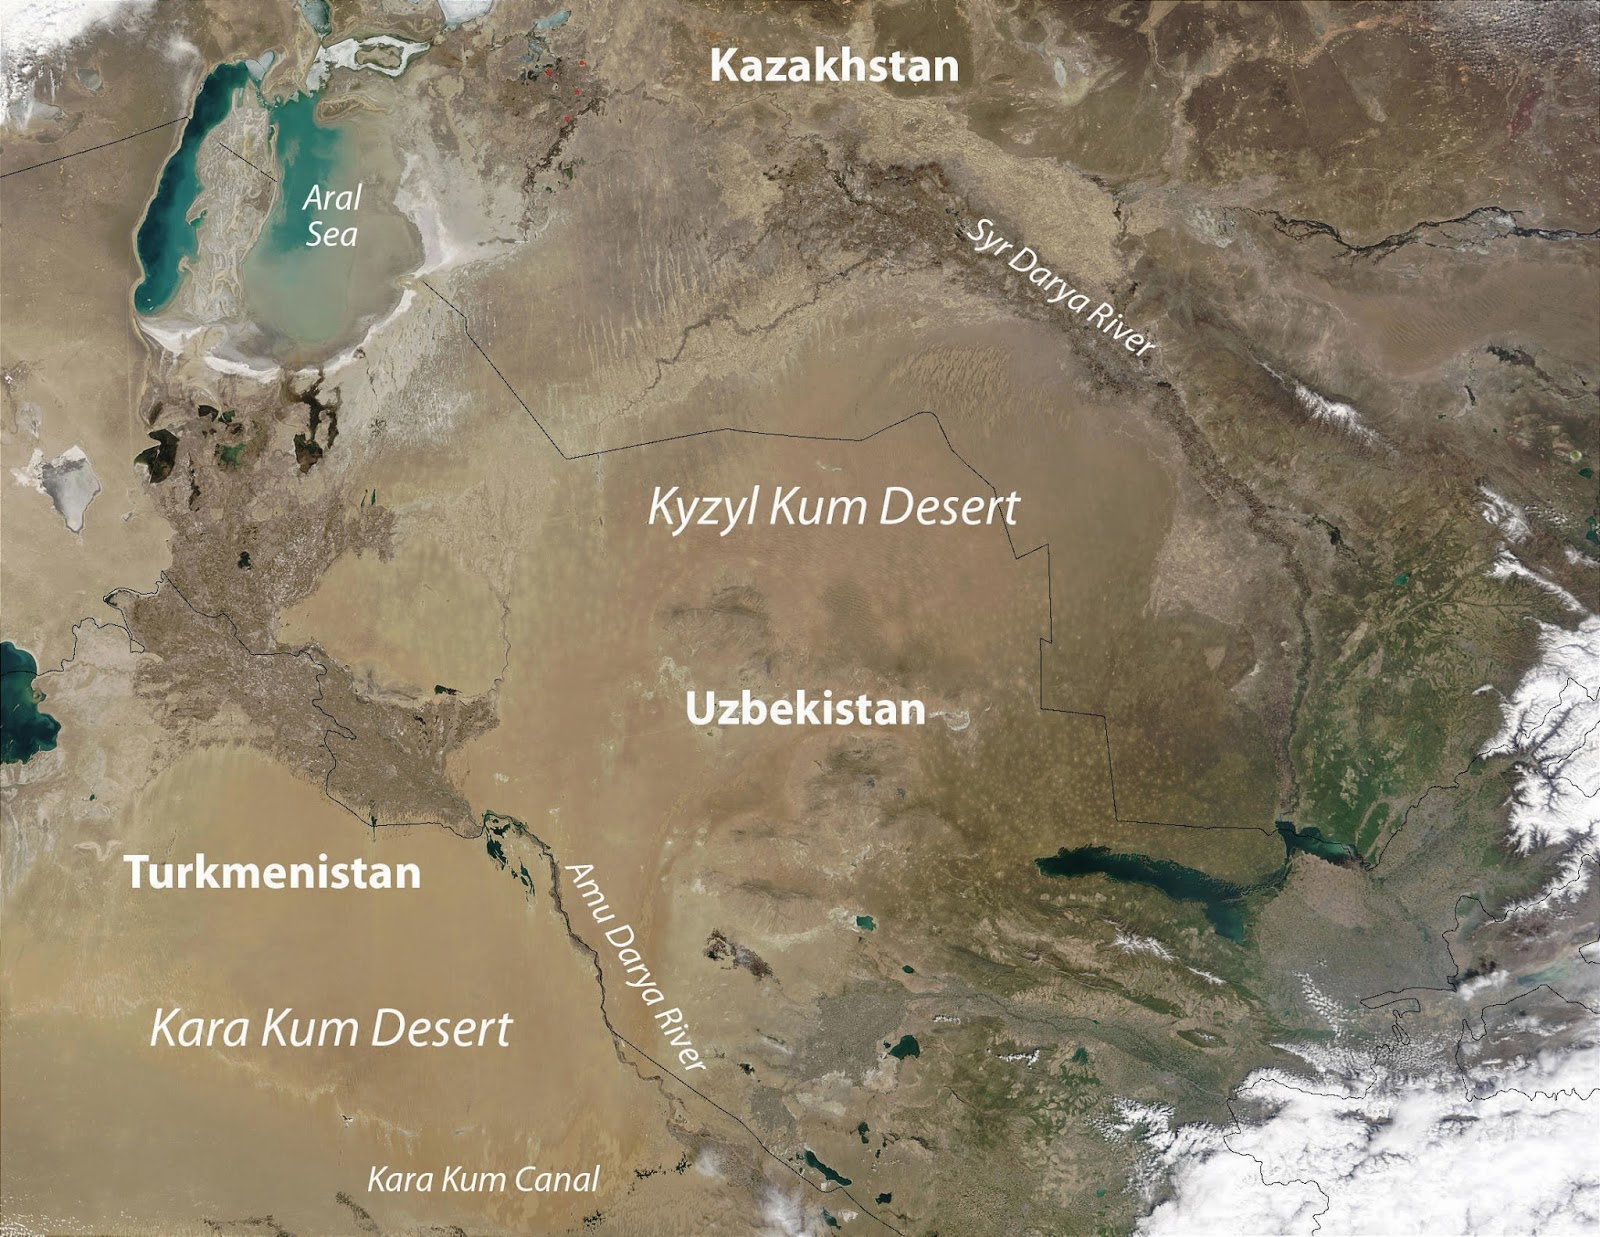 KARAKALPAKSTAN BLOG: DESERTS OF CENTRAL ASIA